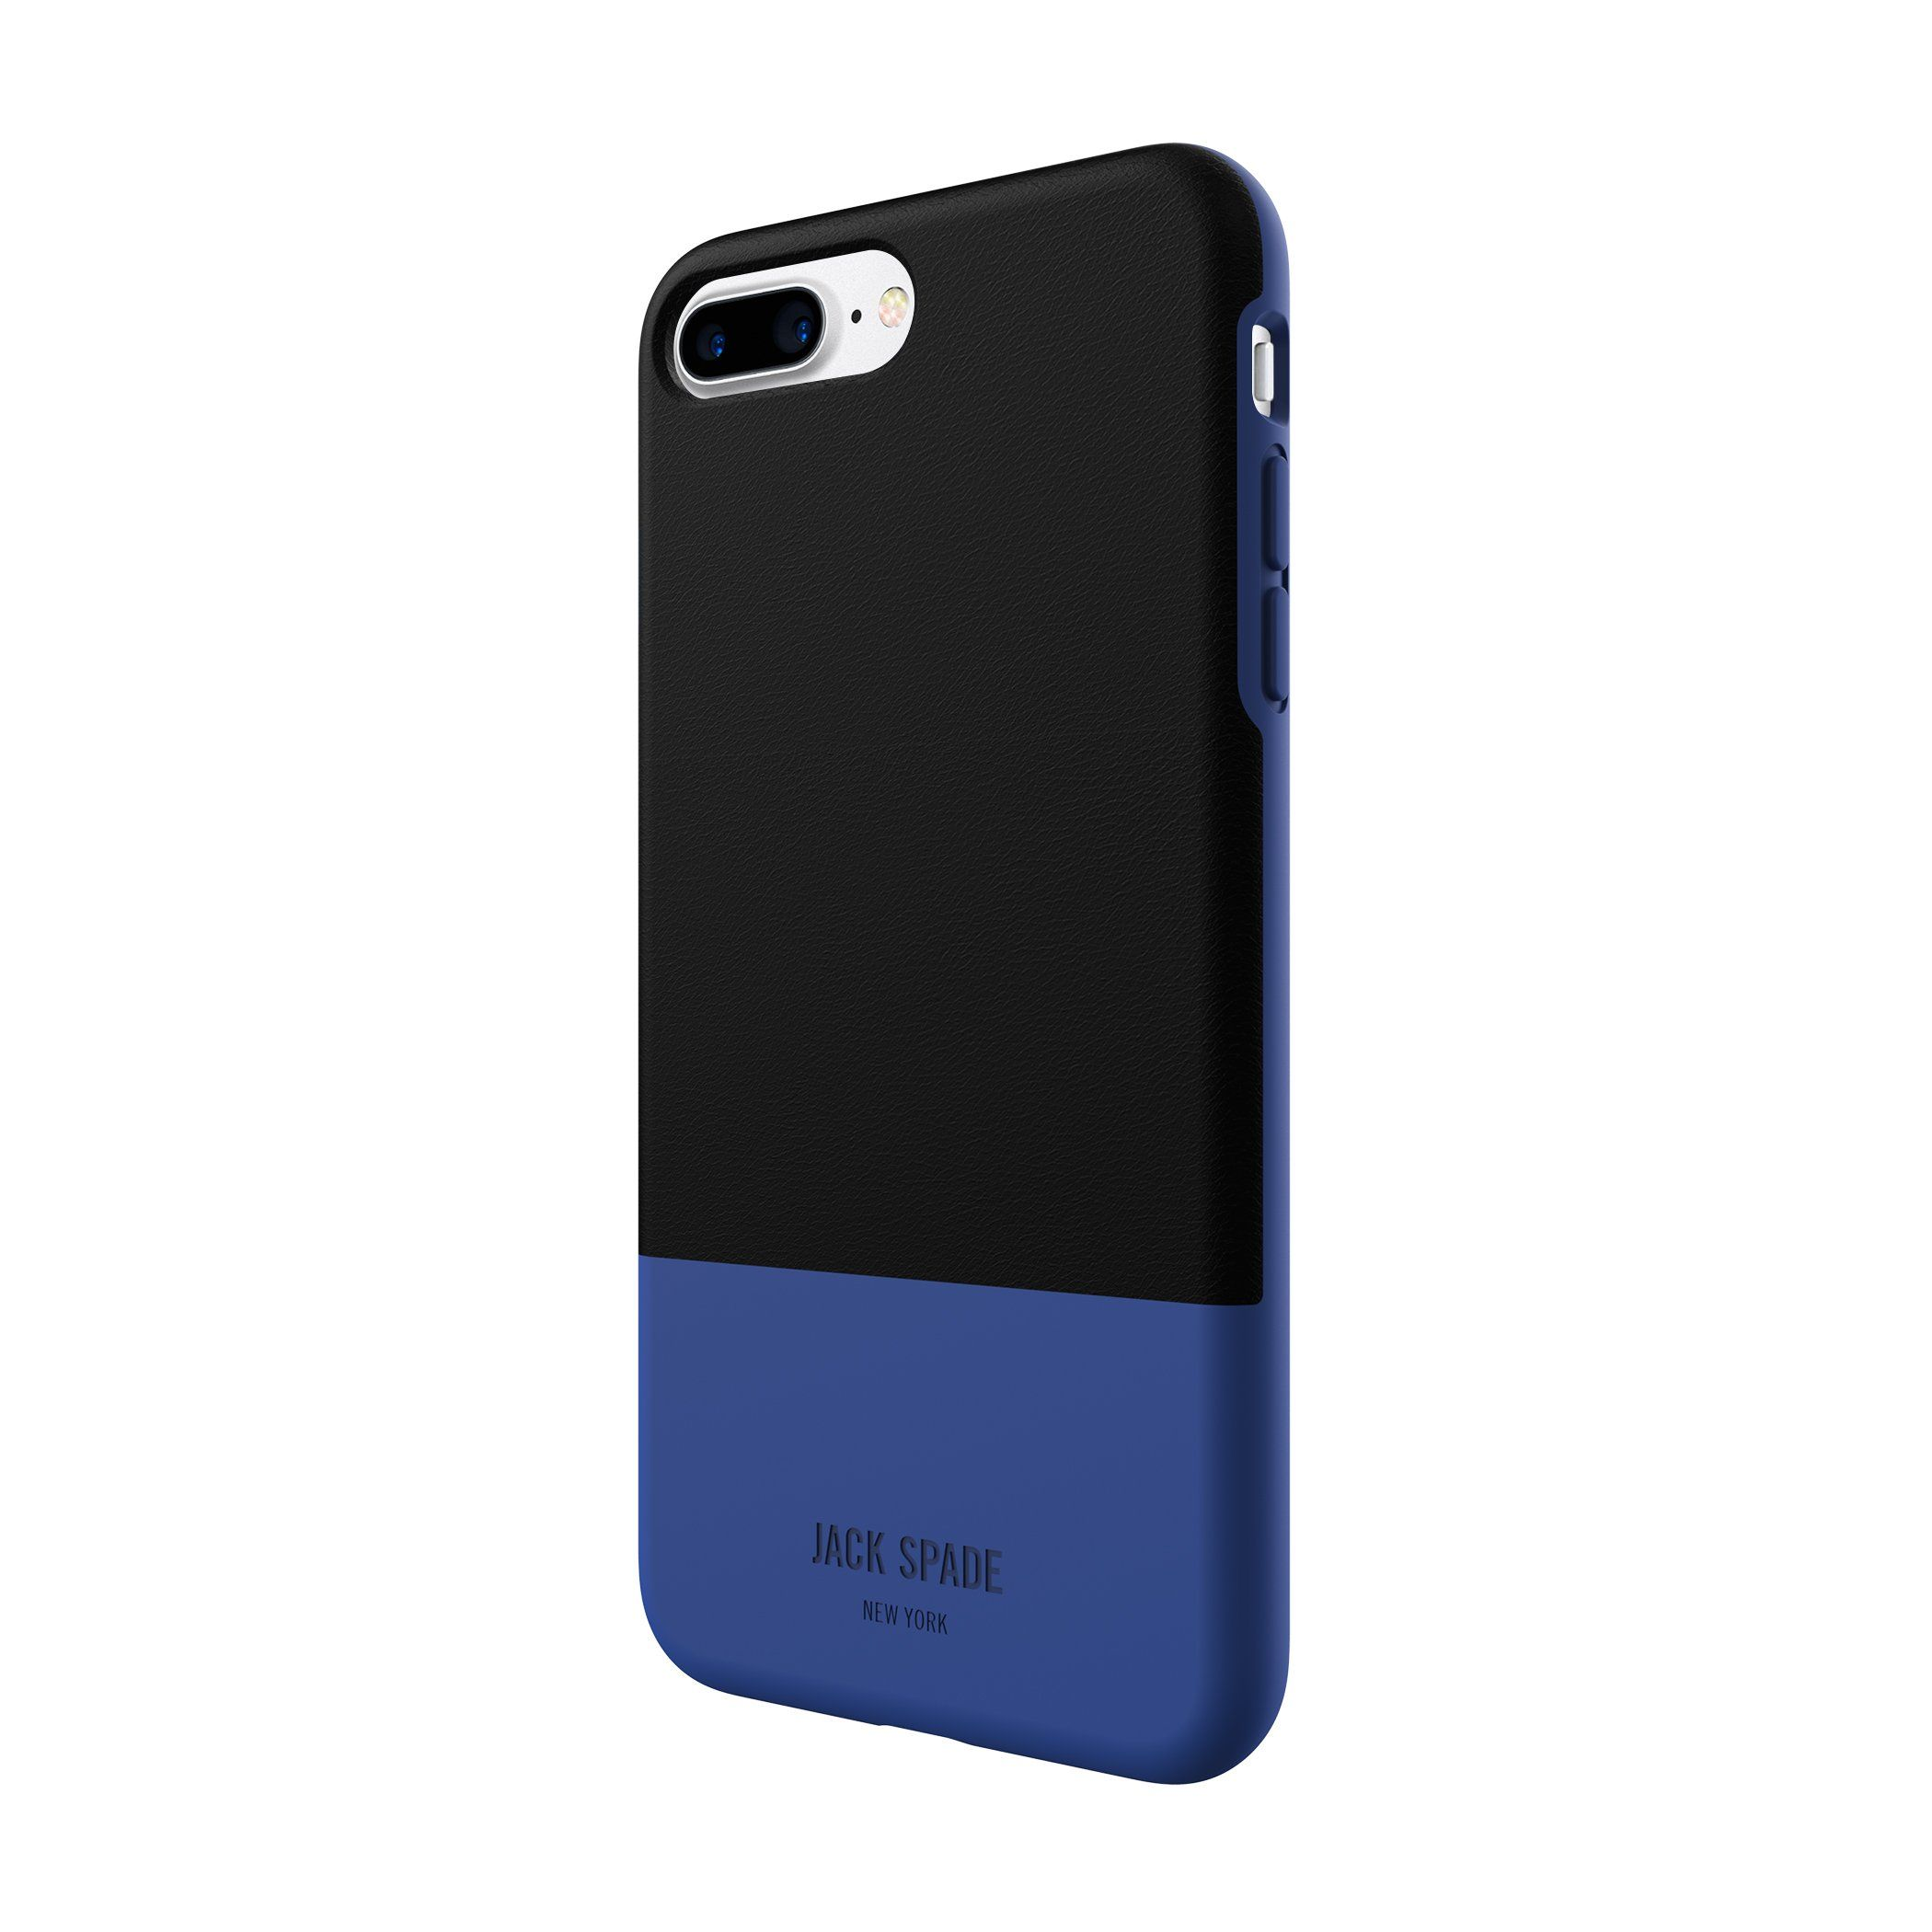 new product 8c939 5dc5e JACK SPADE ColorBlock Case for iPhone 8 Plus | Iphone Accessories ...